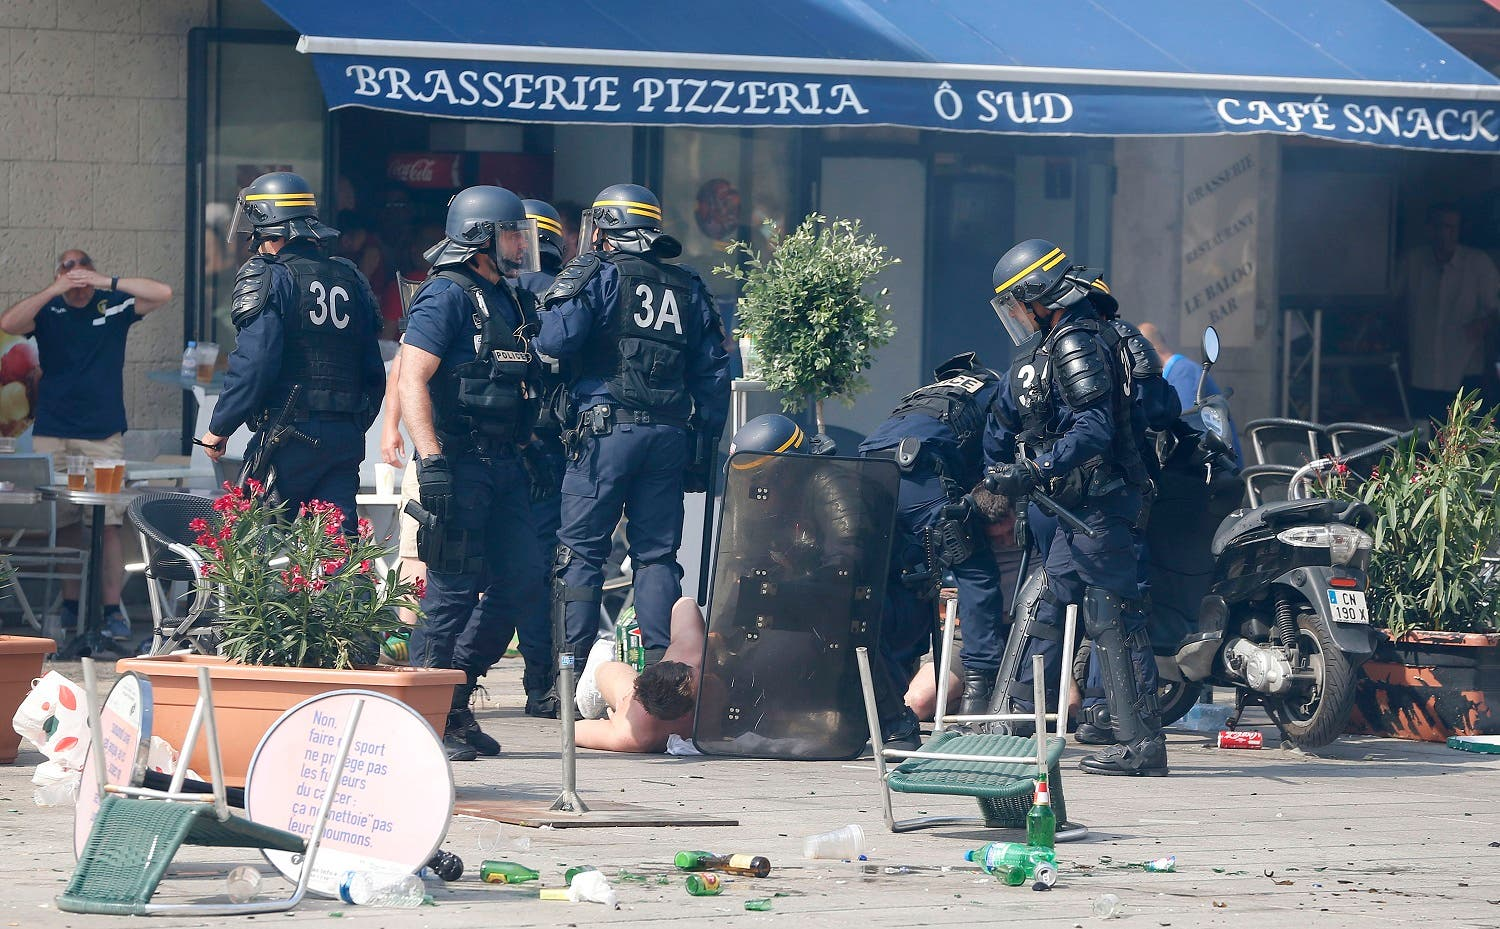 French police officers apprehend soccer supporters during clashes in downtown Marseille, France, Saturday, June 11, 2016. Riot police have thrown tear gas canisters at soccer fans Saturday in Marseille's Old Port in a third straight day of violence in the city. (AP